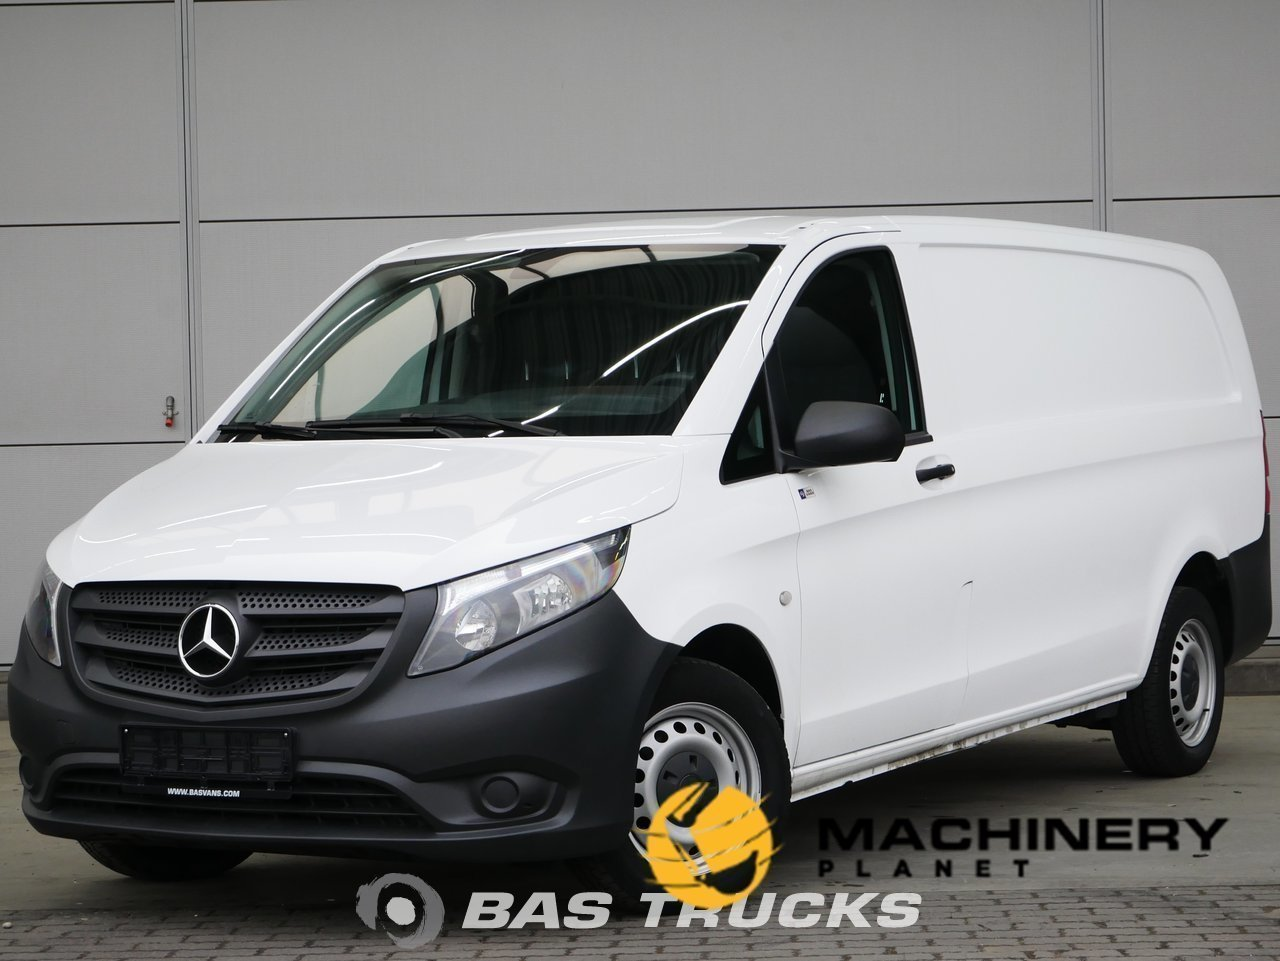 Used-Light-commercial-vehicle-Mercedes-Vito-2017_145649_1-1554198125732_5ca32e6db2a48-1.jpg